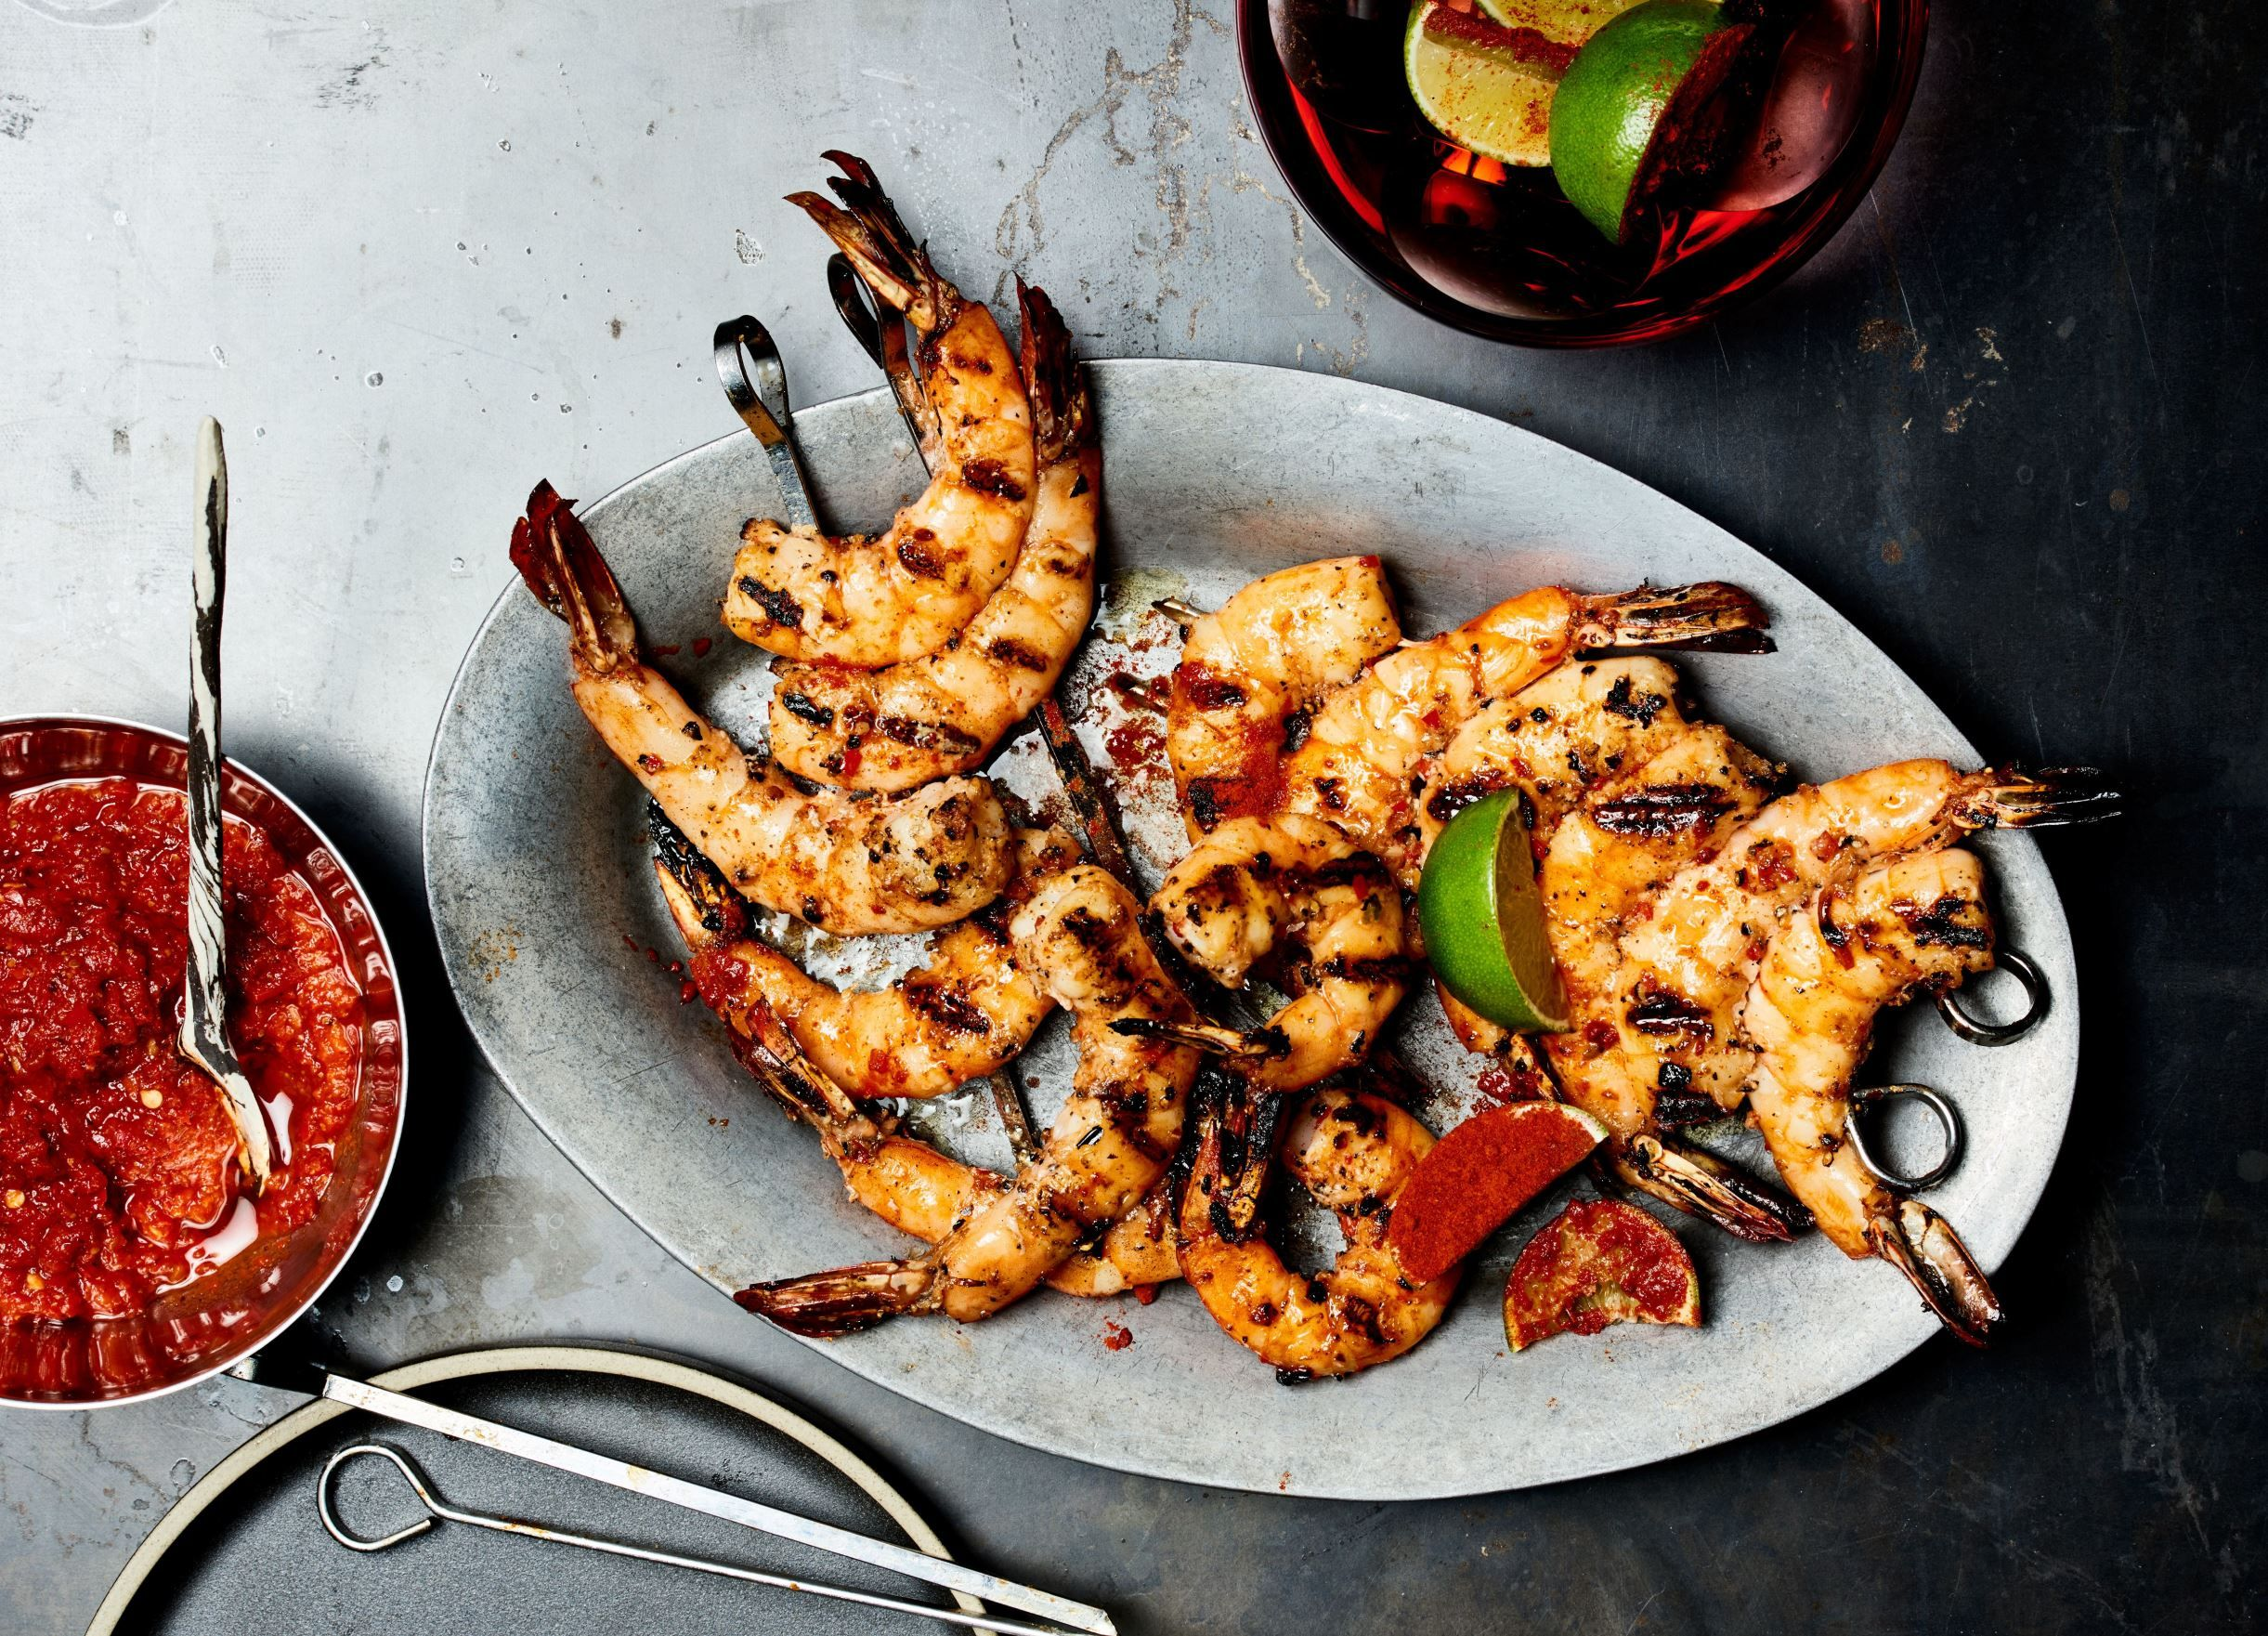 Don't let your shrimp fall through the grill grates or spin around on skewers.